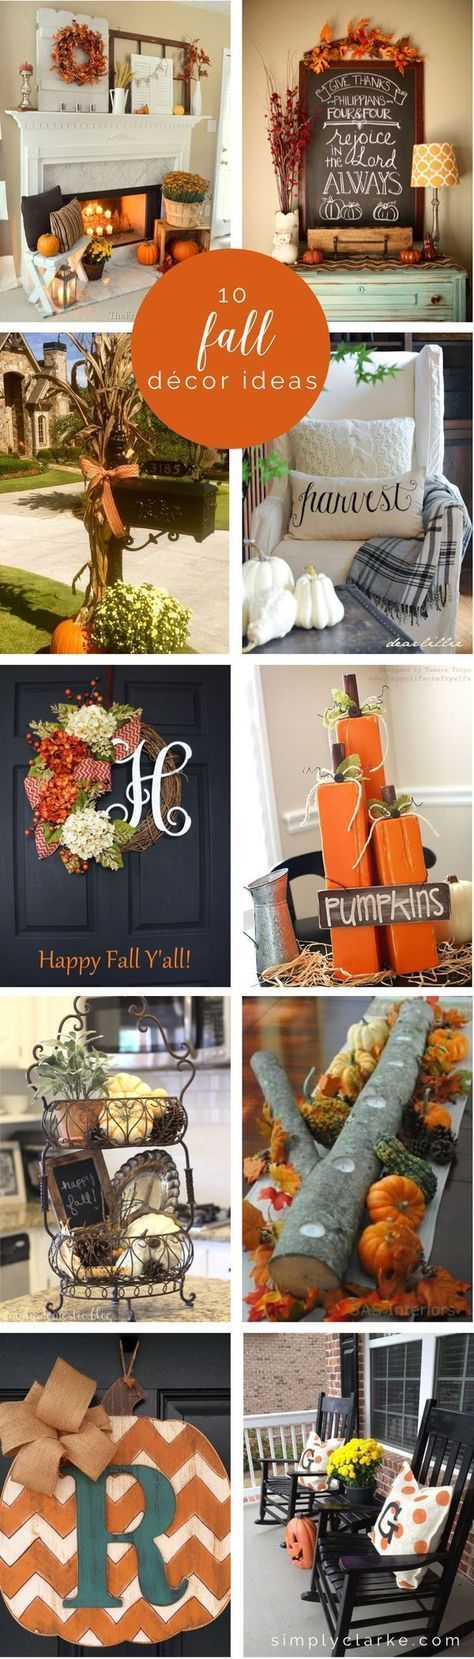 Need to do some fall home decorating just in time for the holiday season? Try one of these super cute ideas!